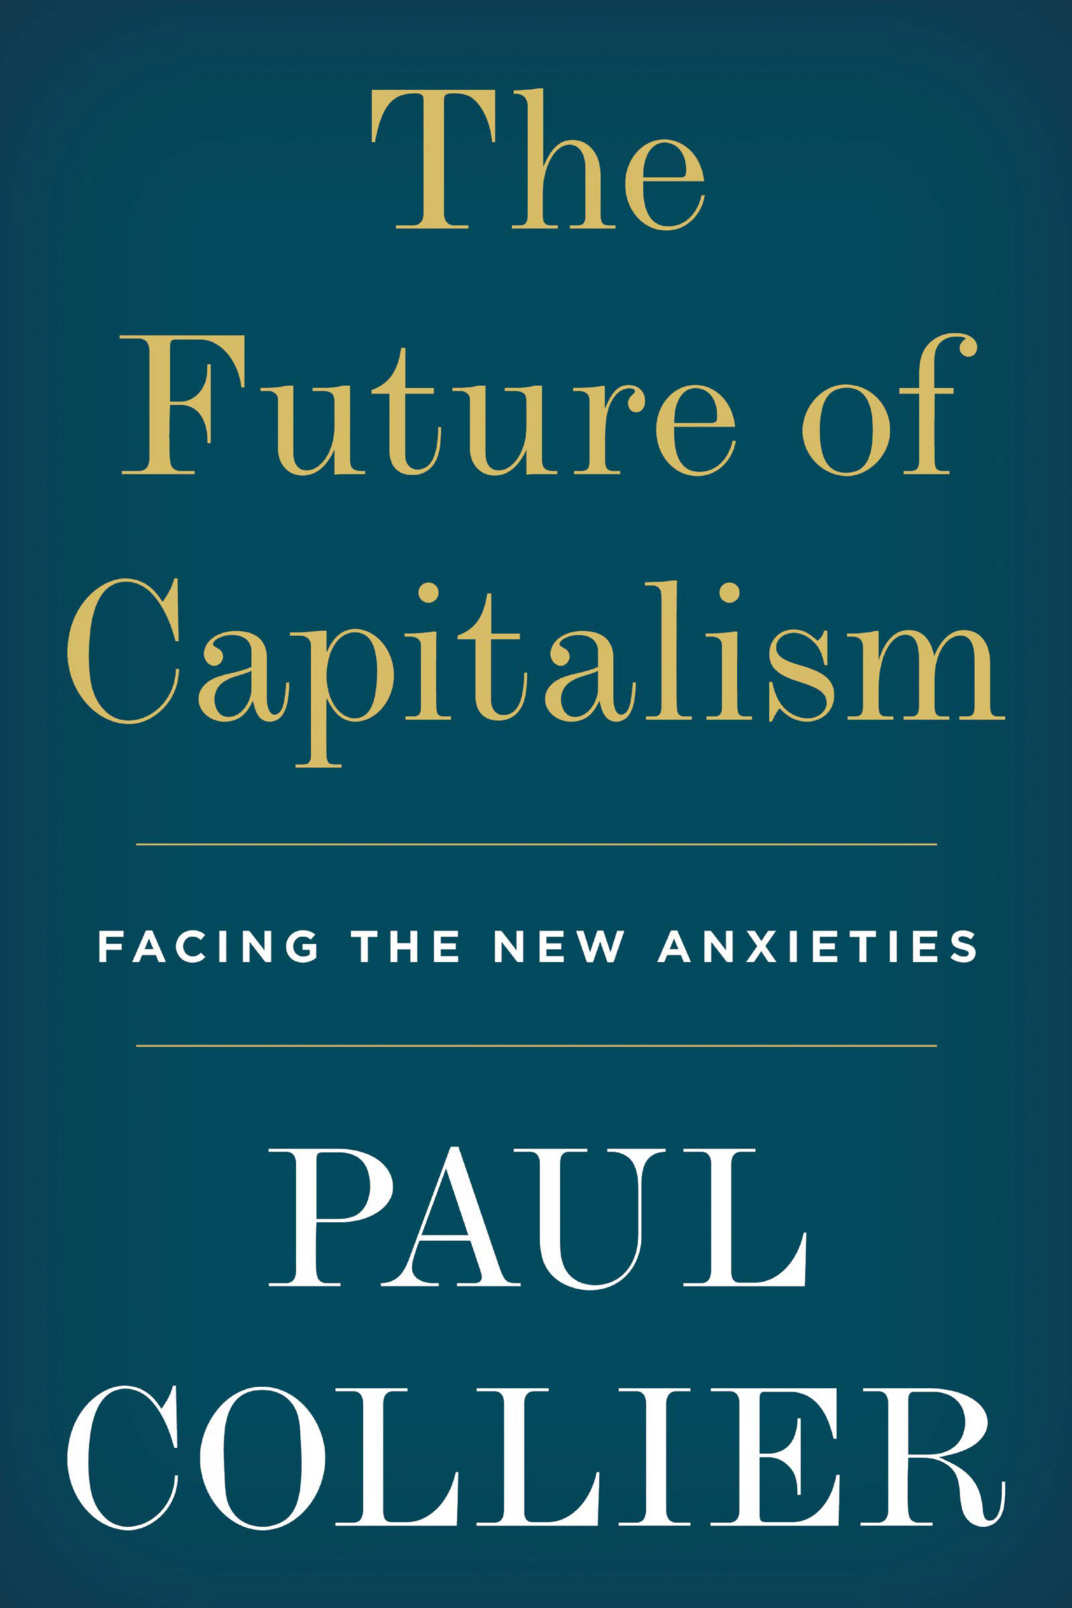 <em>The Future of Capitalism: Facing the New Anxieties</em>, by Paul Collier (Harper, December 4)